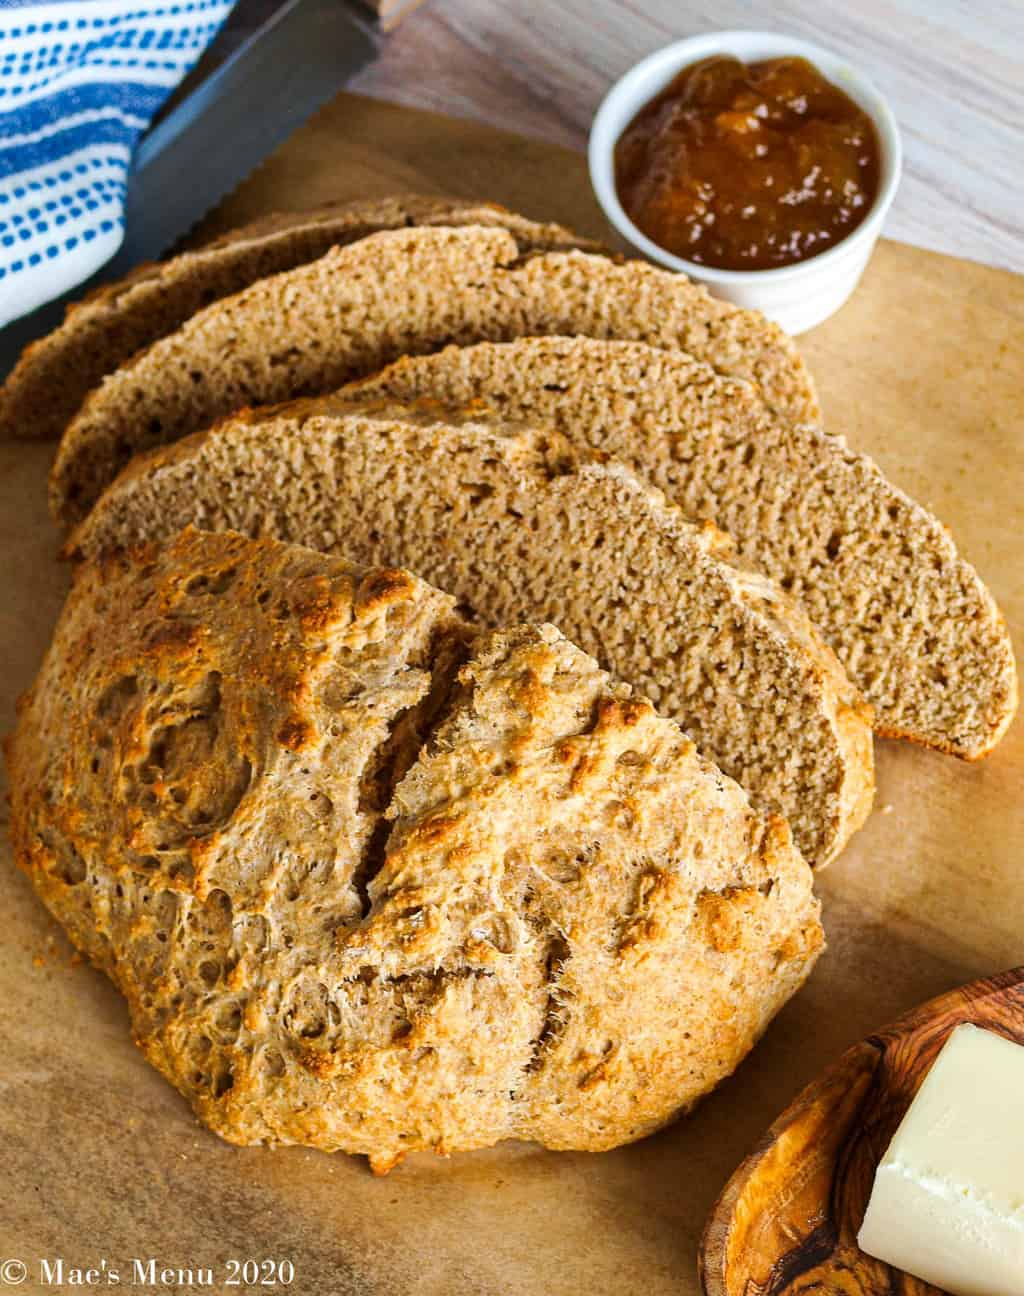 An angled shot of a sliced loaf of whole wheat beer bread